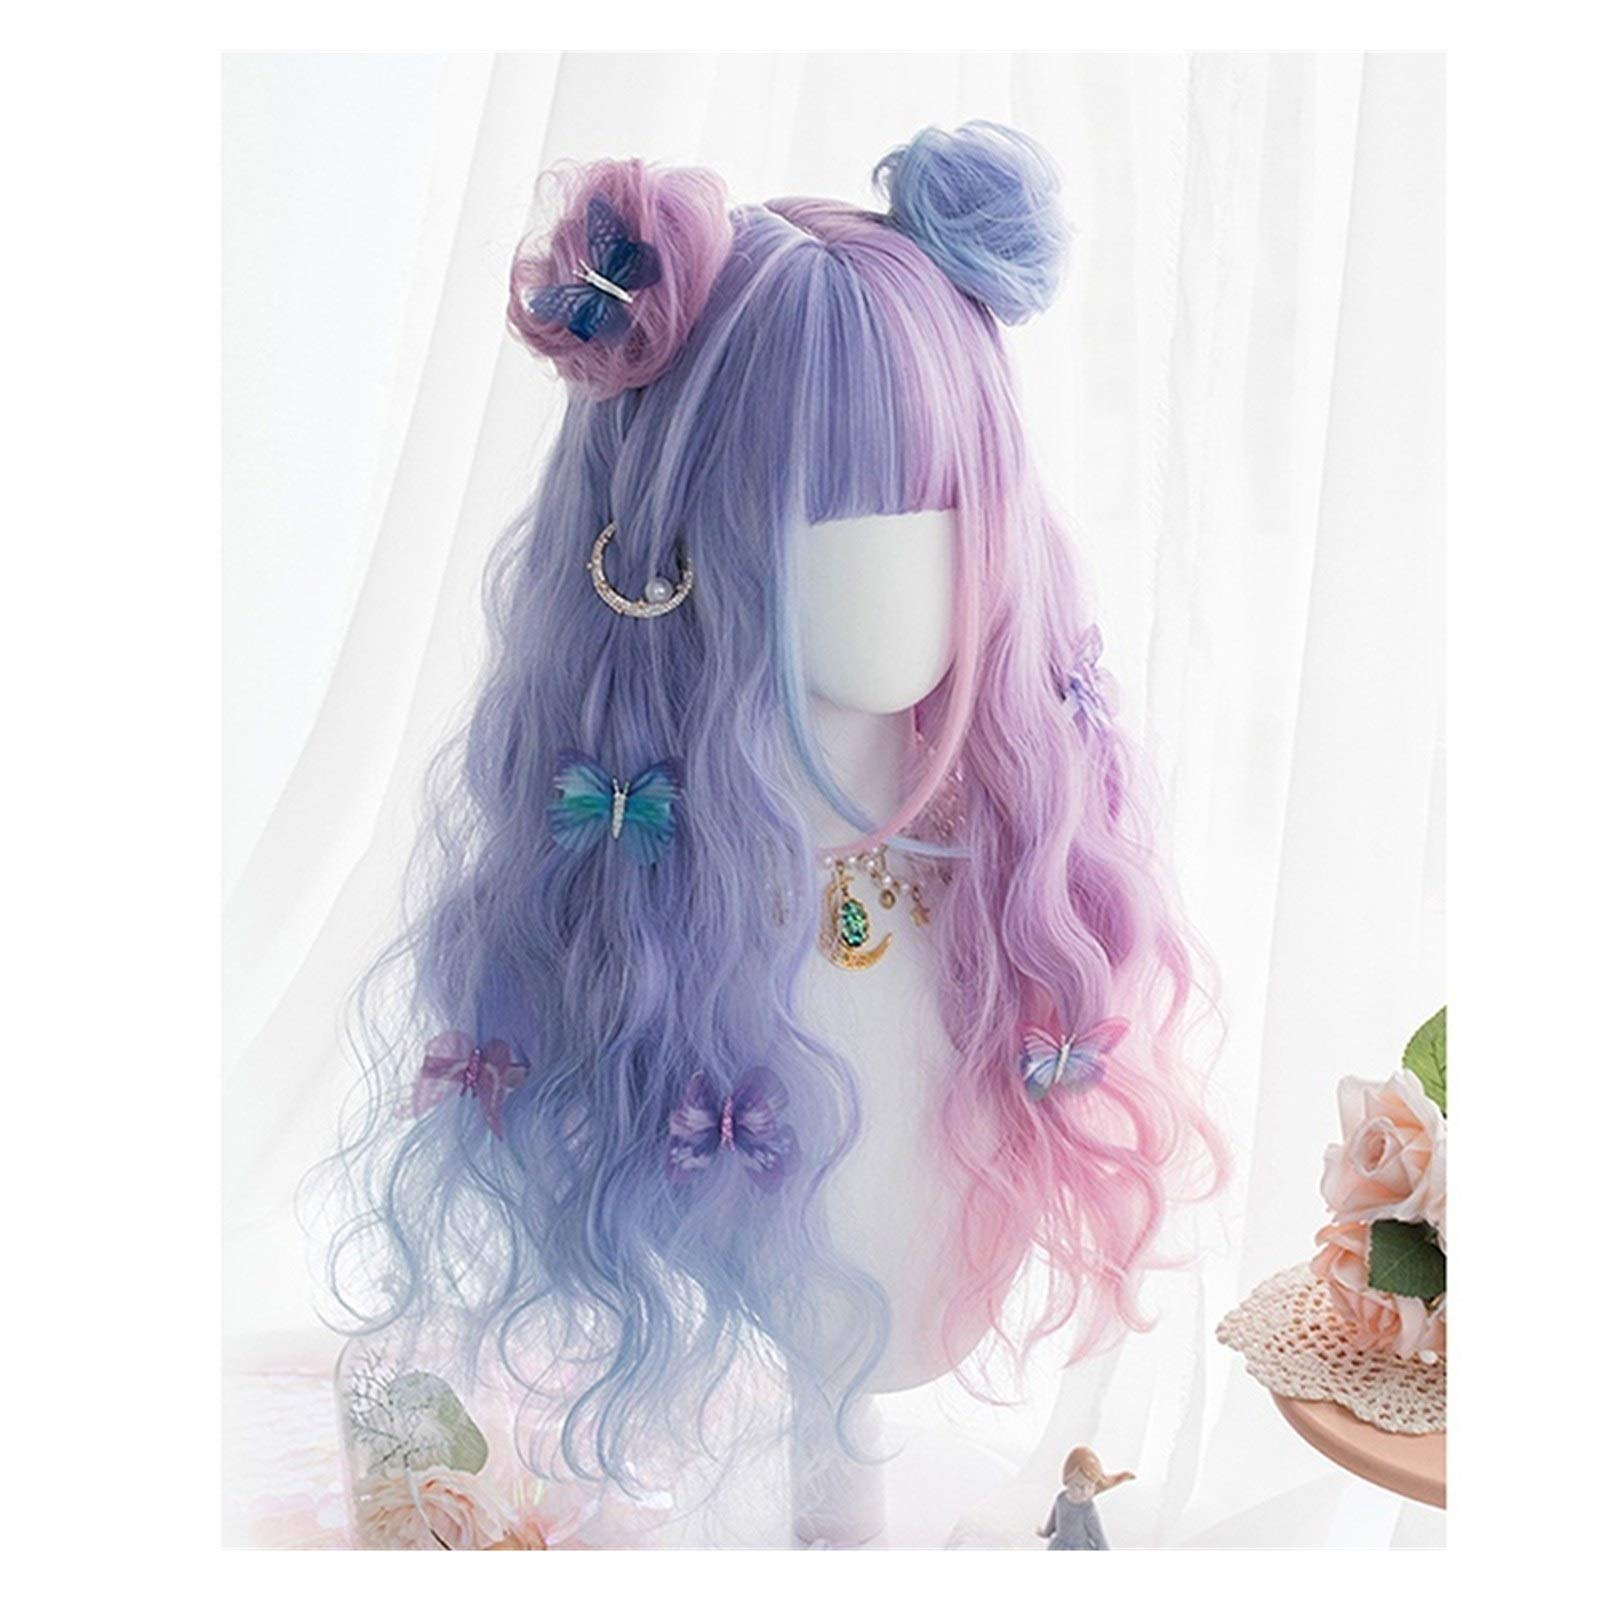 NDMUS Lolita Wig Llolita 65CM Long Curly Purple Mixed Blue Ombre Bangs with Buns Headband Cute Ladies Cosplay Wig (Color : Wig Buns, Stretched Length : 24inches)